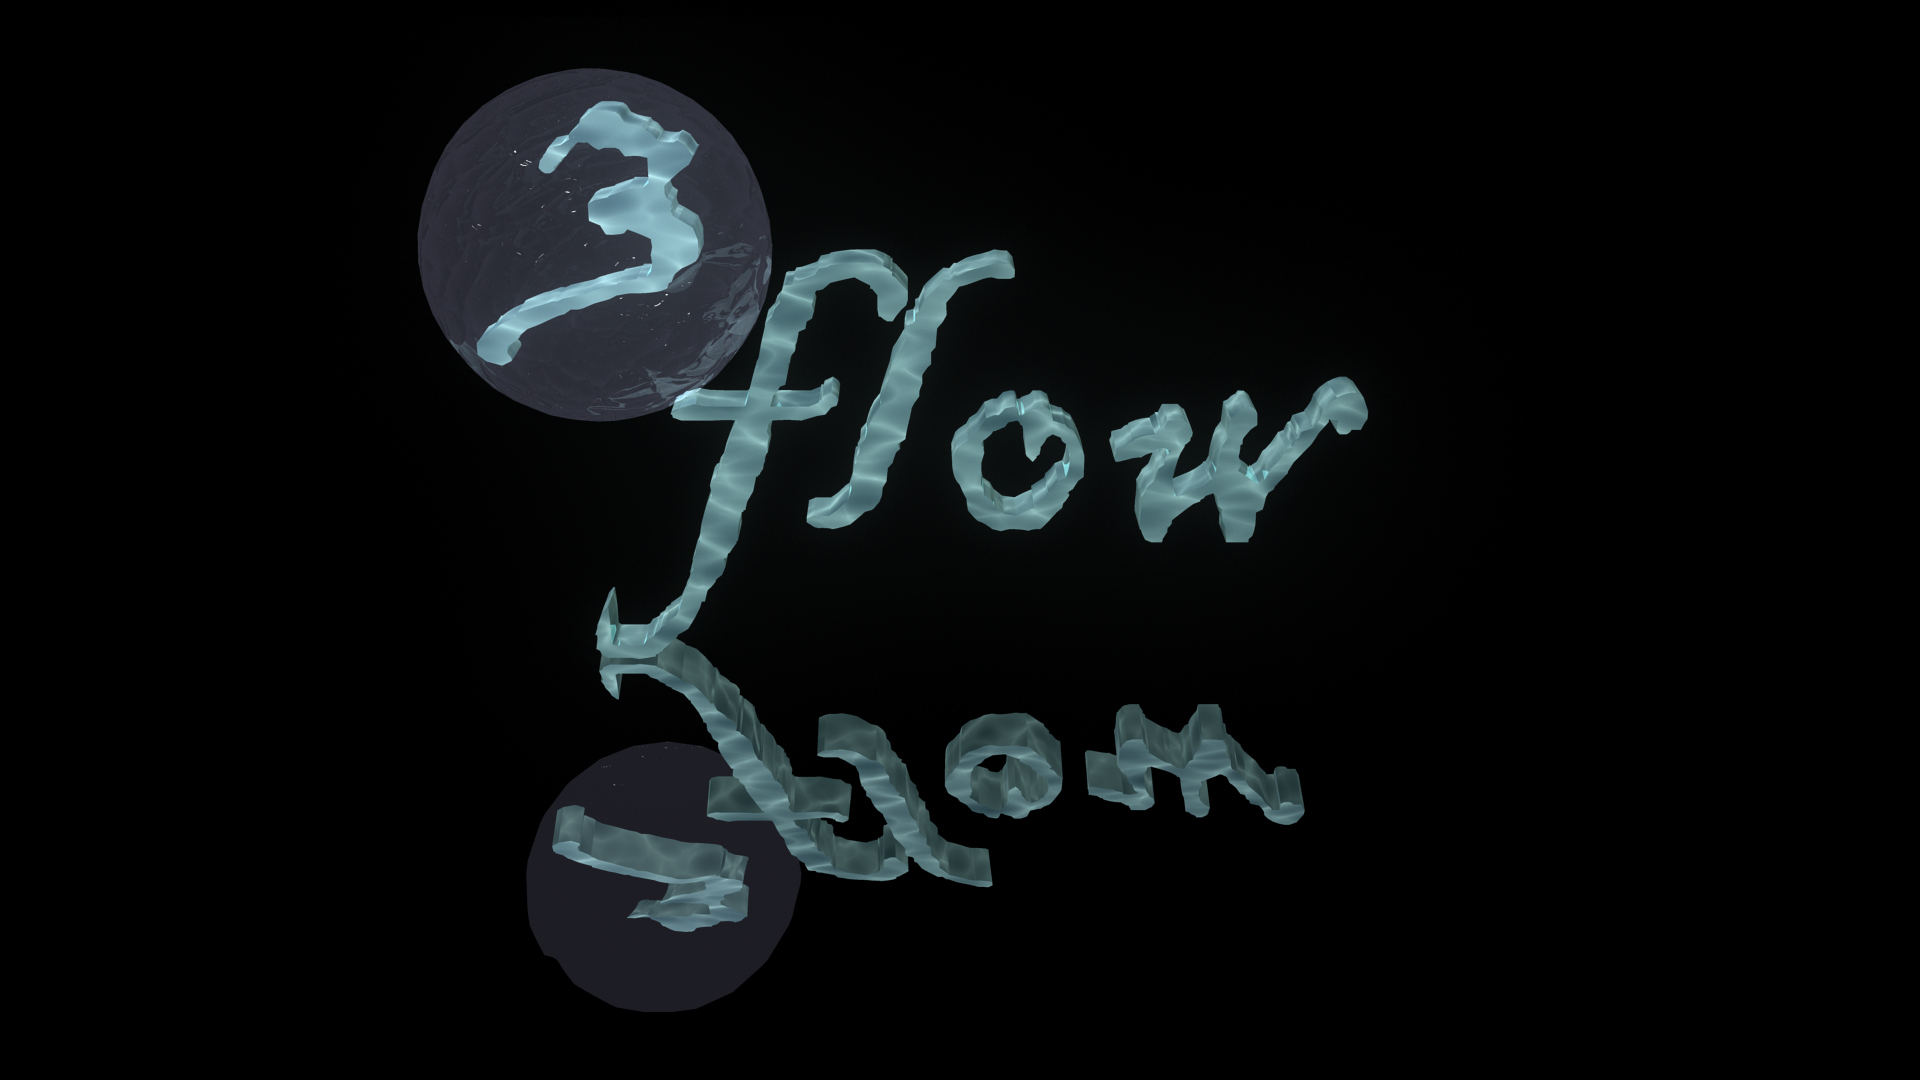 Logo Design by zigzag91 - Entry No. 130 in the Logo Design Contest Fun Logo Design for 3flow.